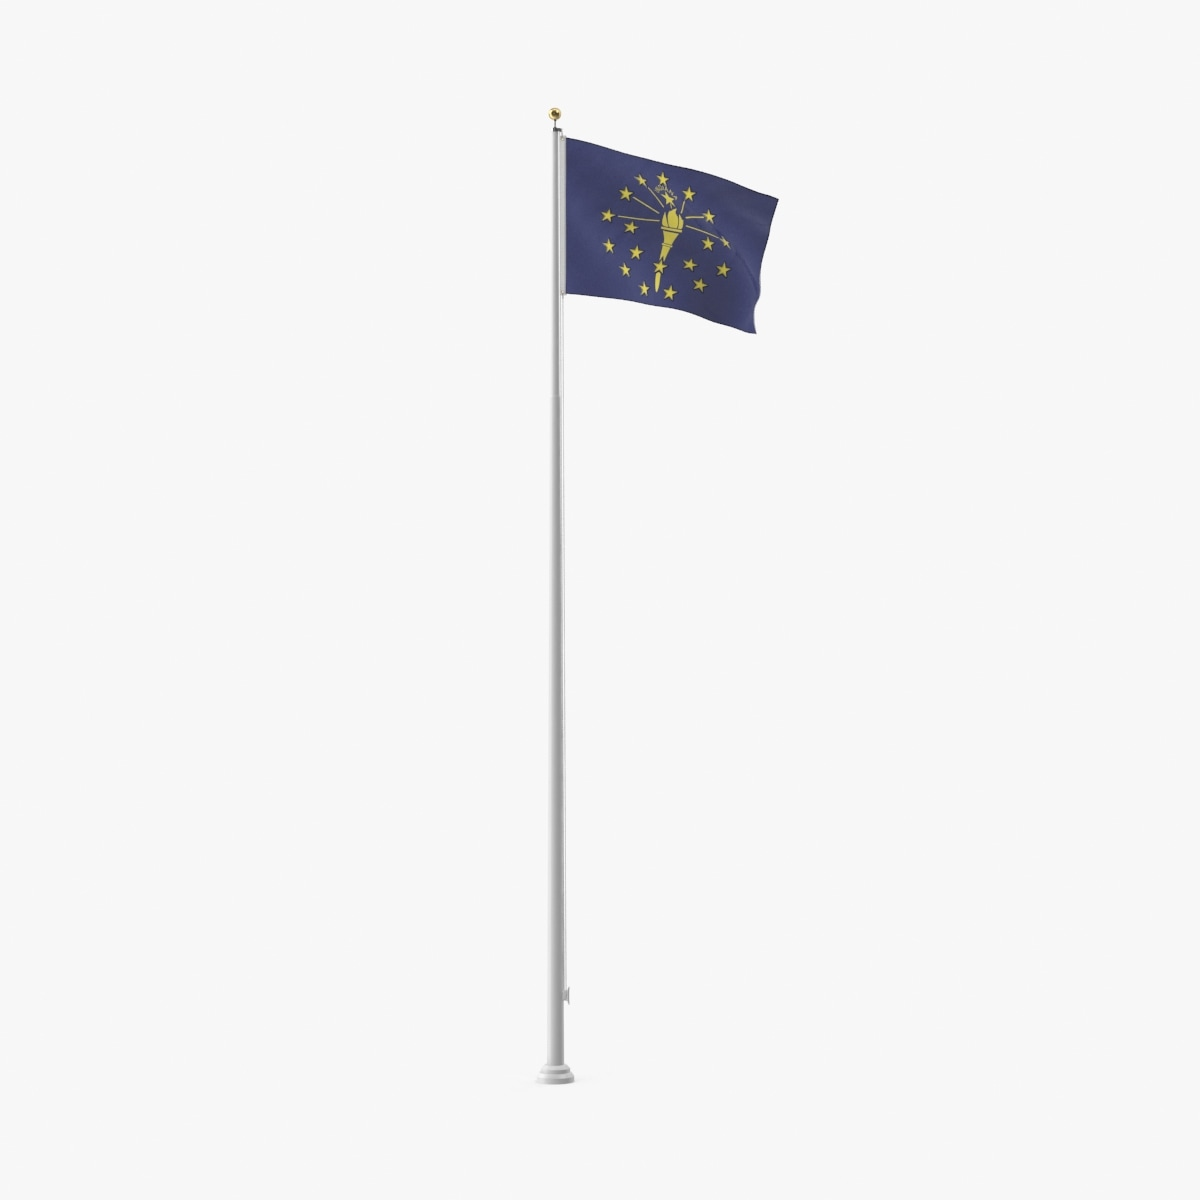 state-flags---indiana 3D